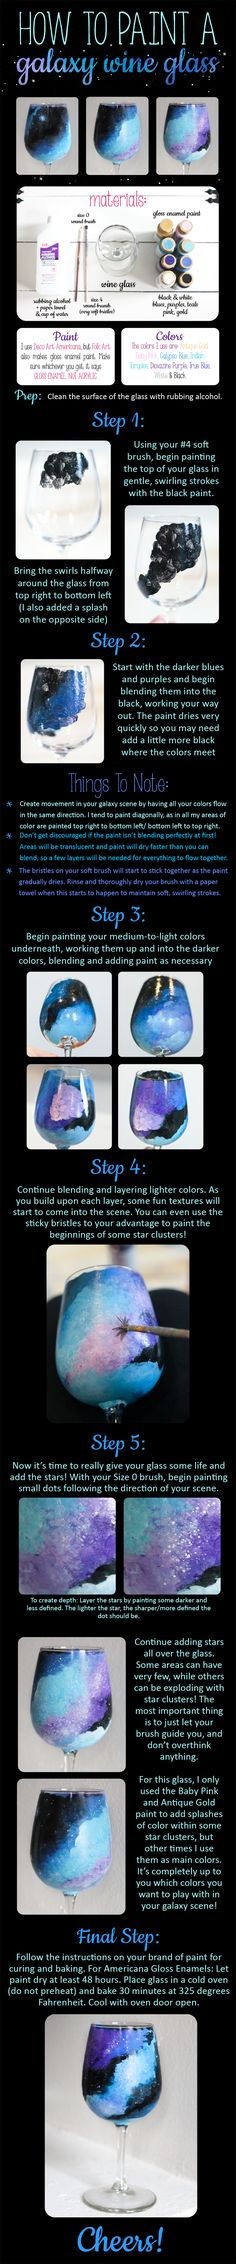 DIY Tutorial: How To Paint a Galaxy Scene Wine Glass! To purchase the glass feat… DIY Tutorial: How To Paint a Galaxy Scene Wine Glass! To purchase the glass featured in this tutorial, visit JocelynArielle on Etsy! Wine Glass Crafts, Wine Craft, Wine Bottle Crafts, Bottle Art, Diy Wine Glasses, Hand Painted Wine Glasses, Painted Wine Bottles, Diy Galaxy, Galaxy Crafts